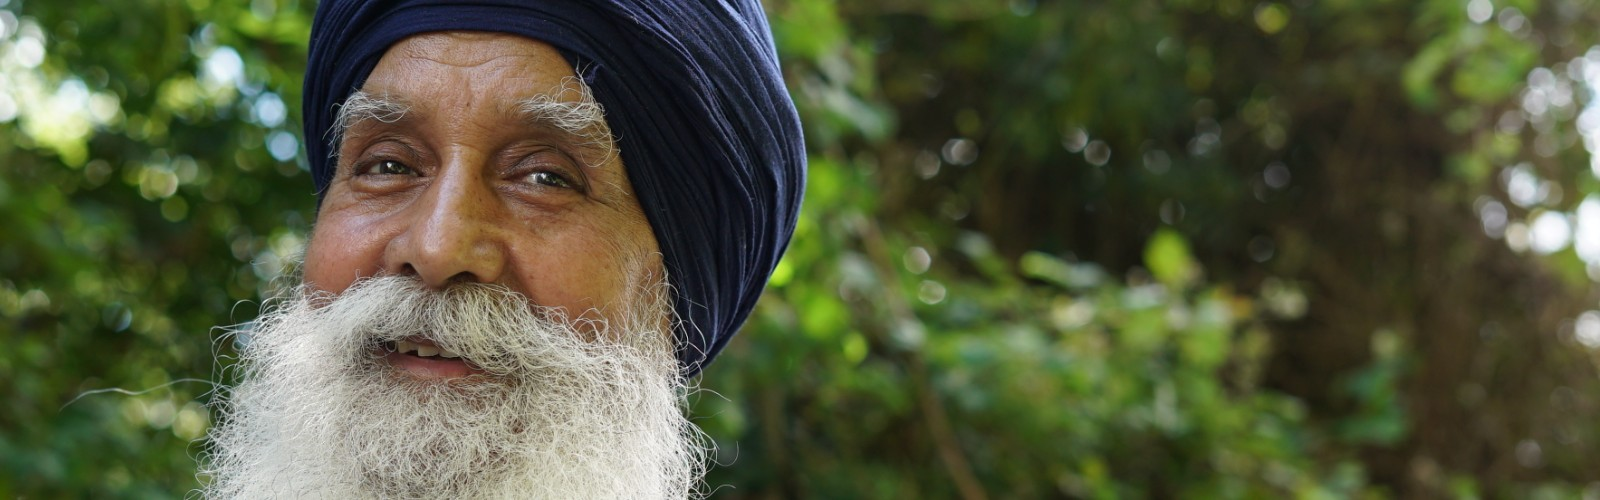 Rajinder, a 73-year-old man of Indian descent known as 'the skipping sikh', smiles at the camera